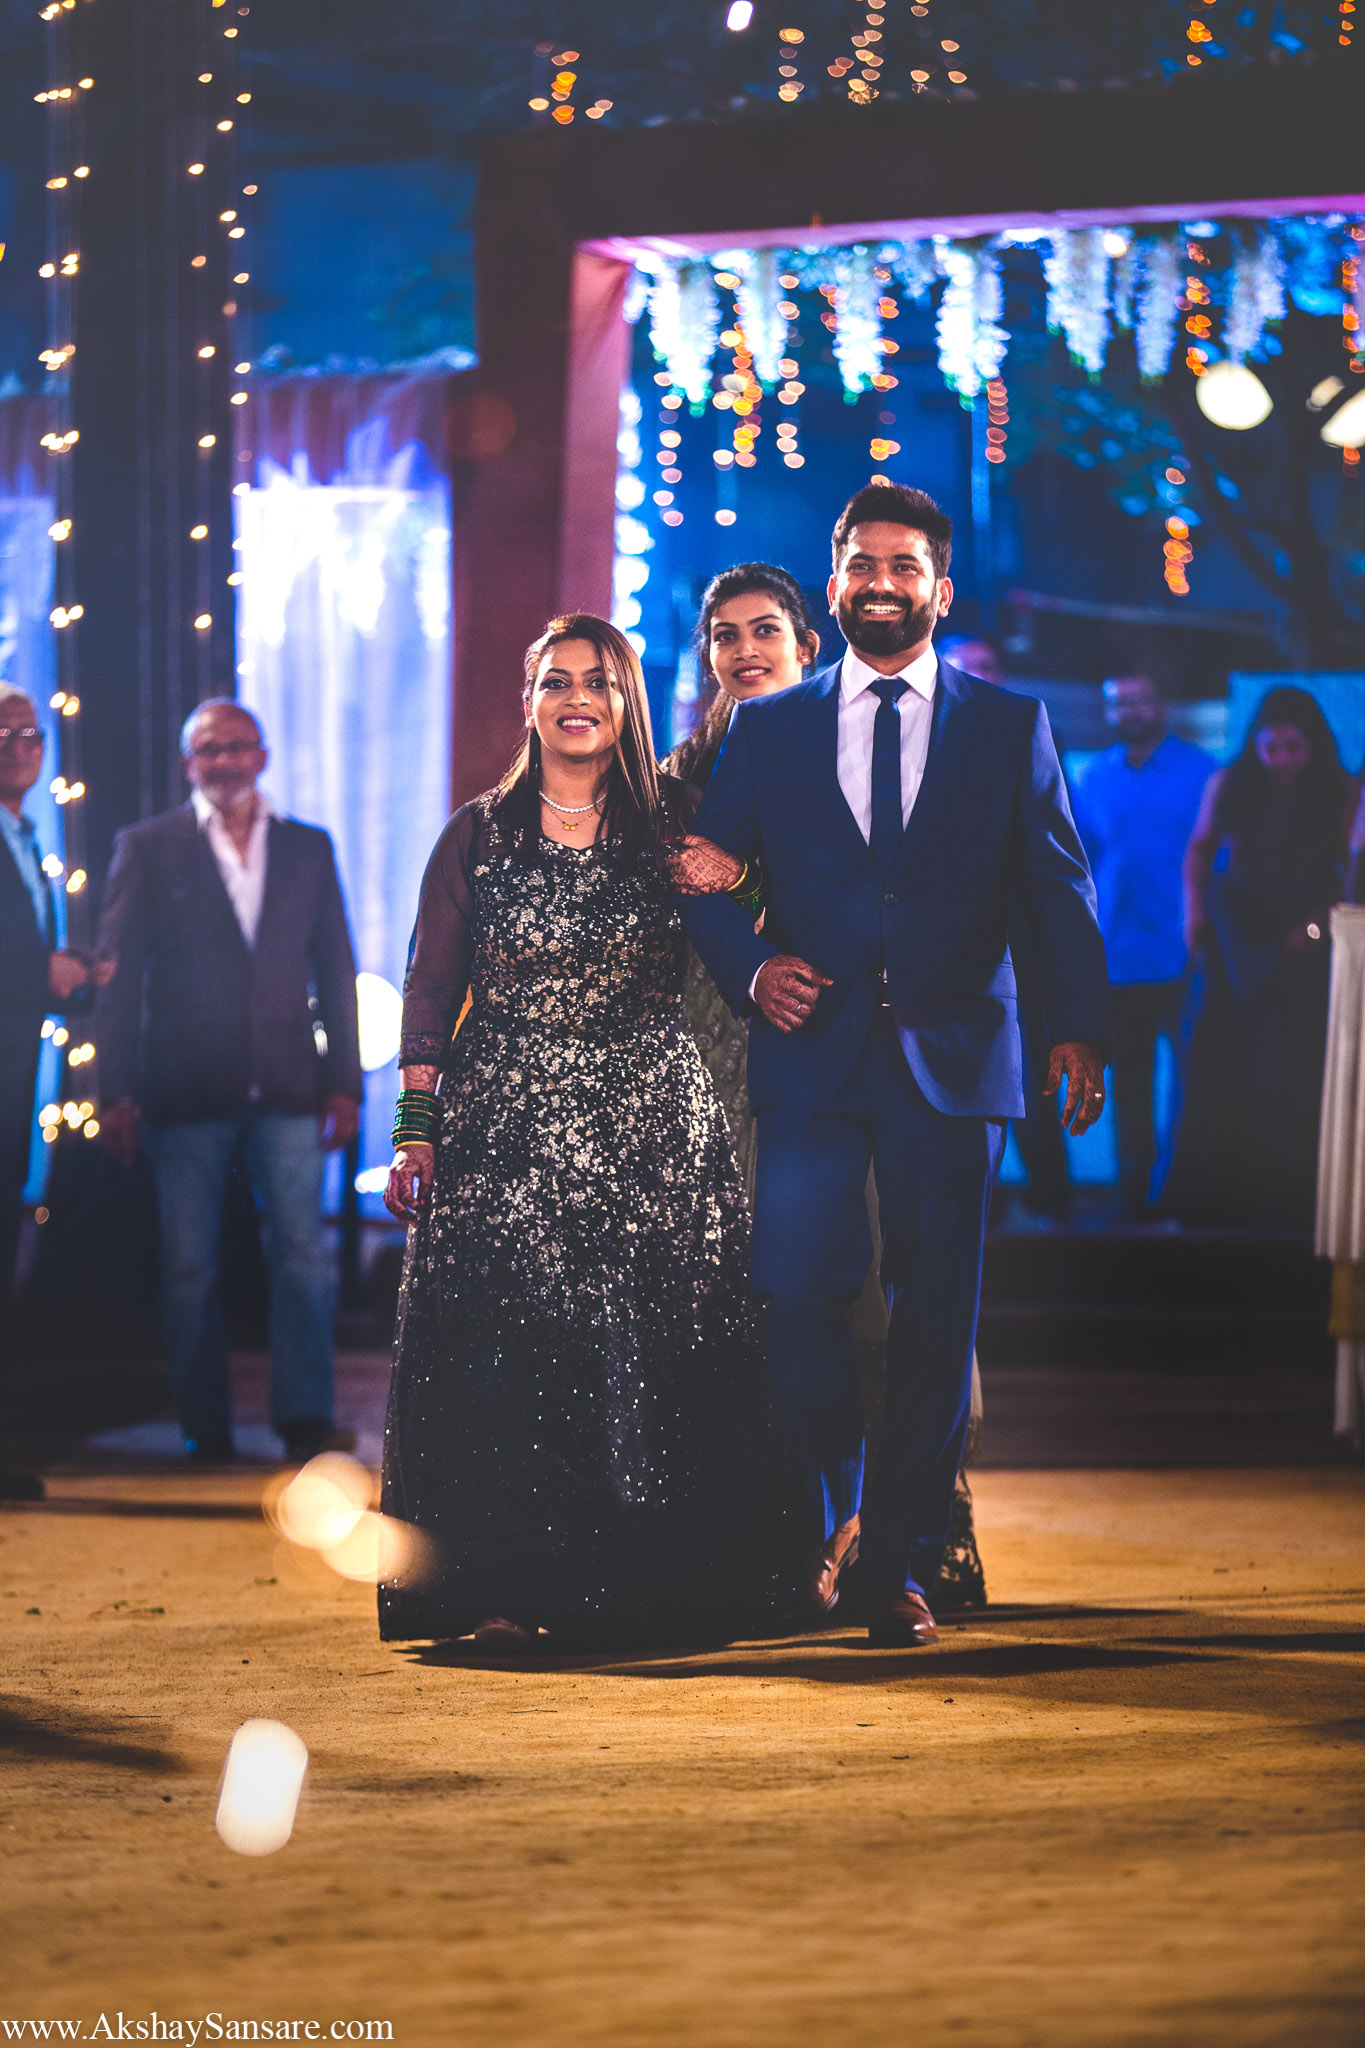 Ajay & Devika Akshay Sansare Photography Best Candid wedding photographer in mumbai india27.jpg